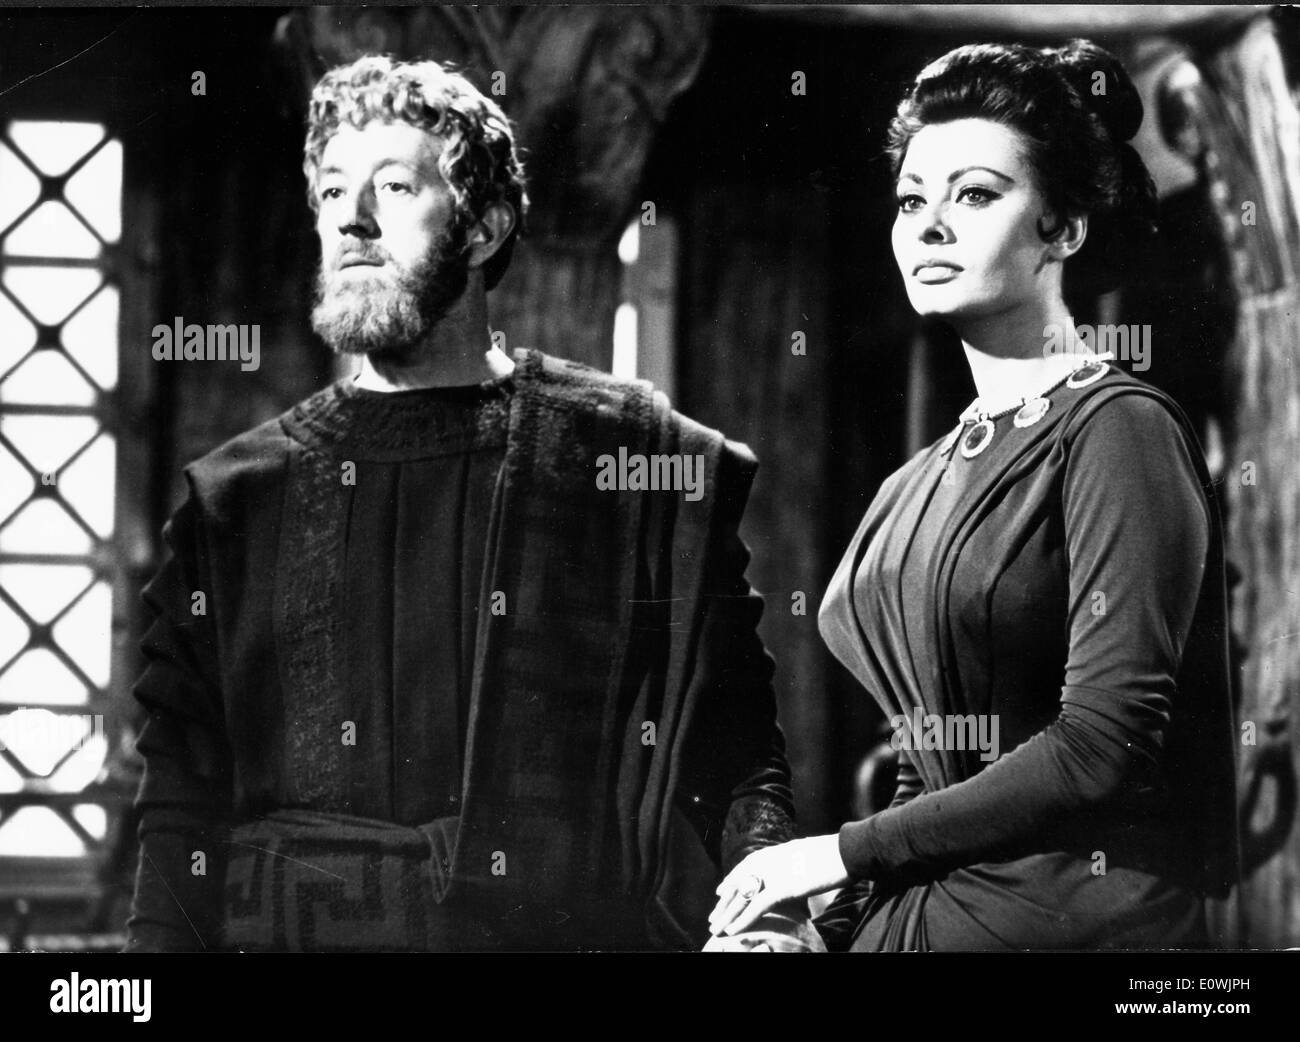 Sophia Loren and Alec Guinness in 'The Fall of the Roman Empire' - Stock Image